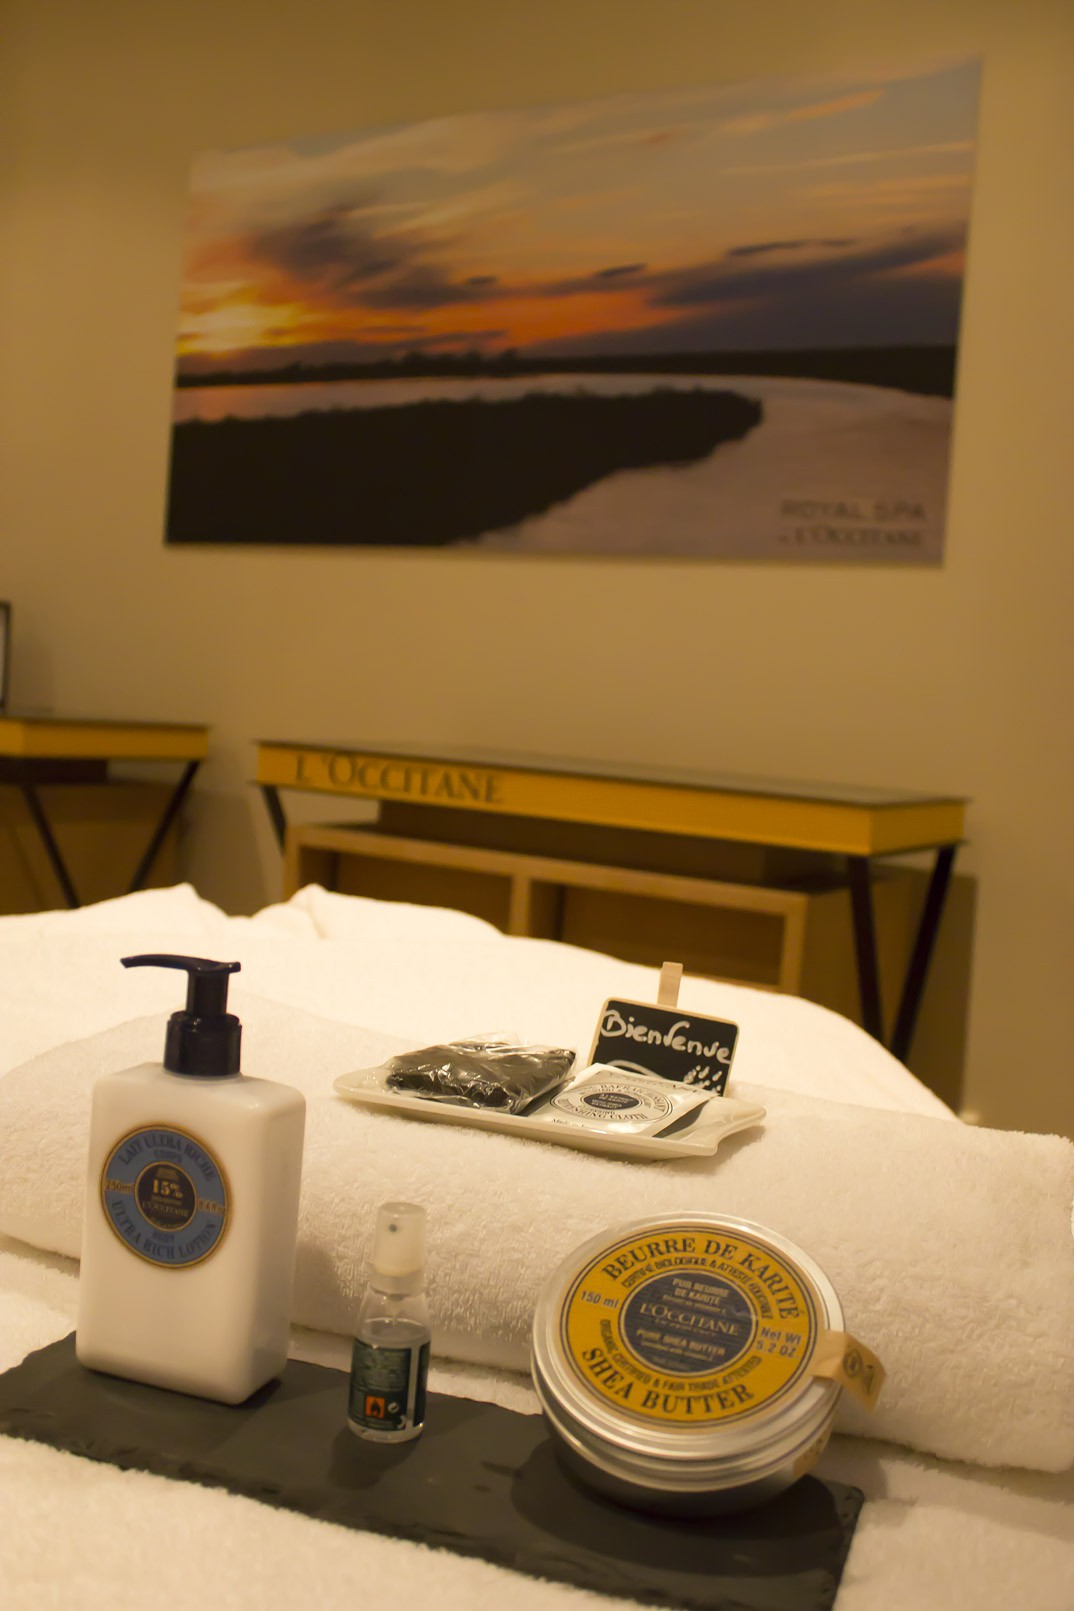 Spa-LOccitane-Crans-Montana-products